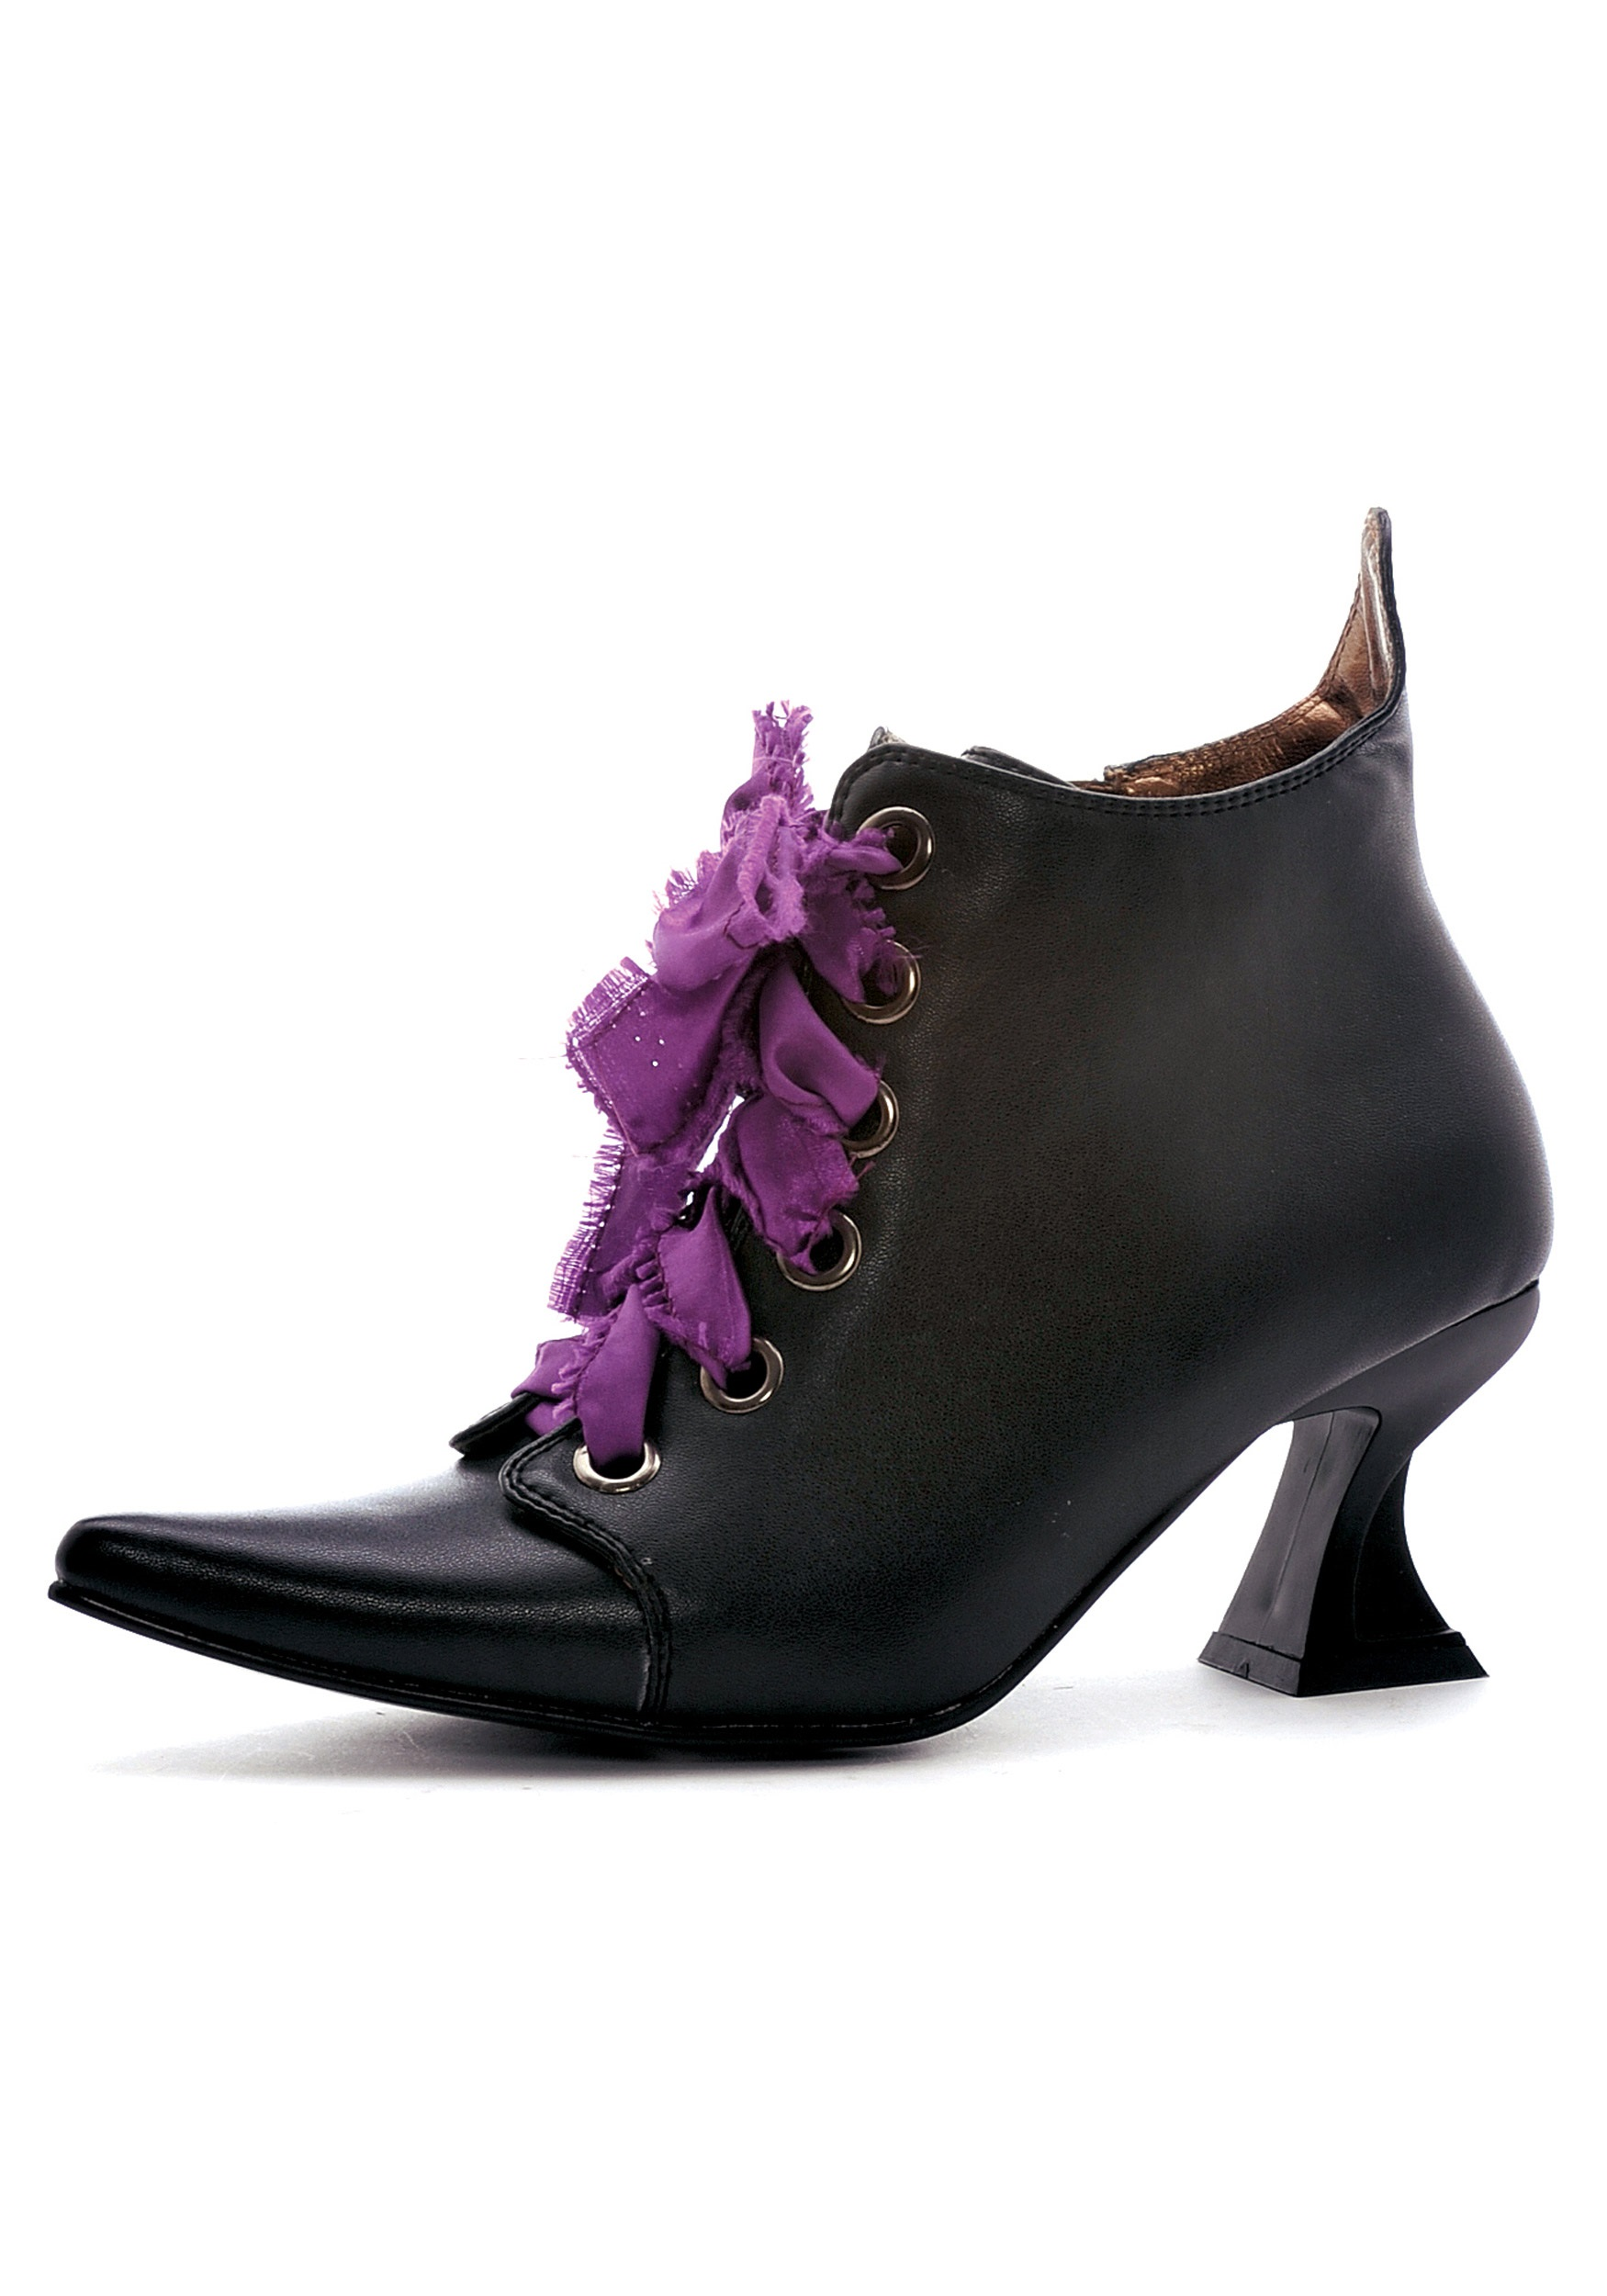 sale online factory authentic online store Womens Lace Up Witch Shoes